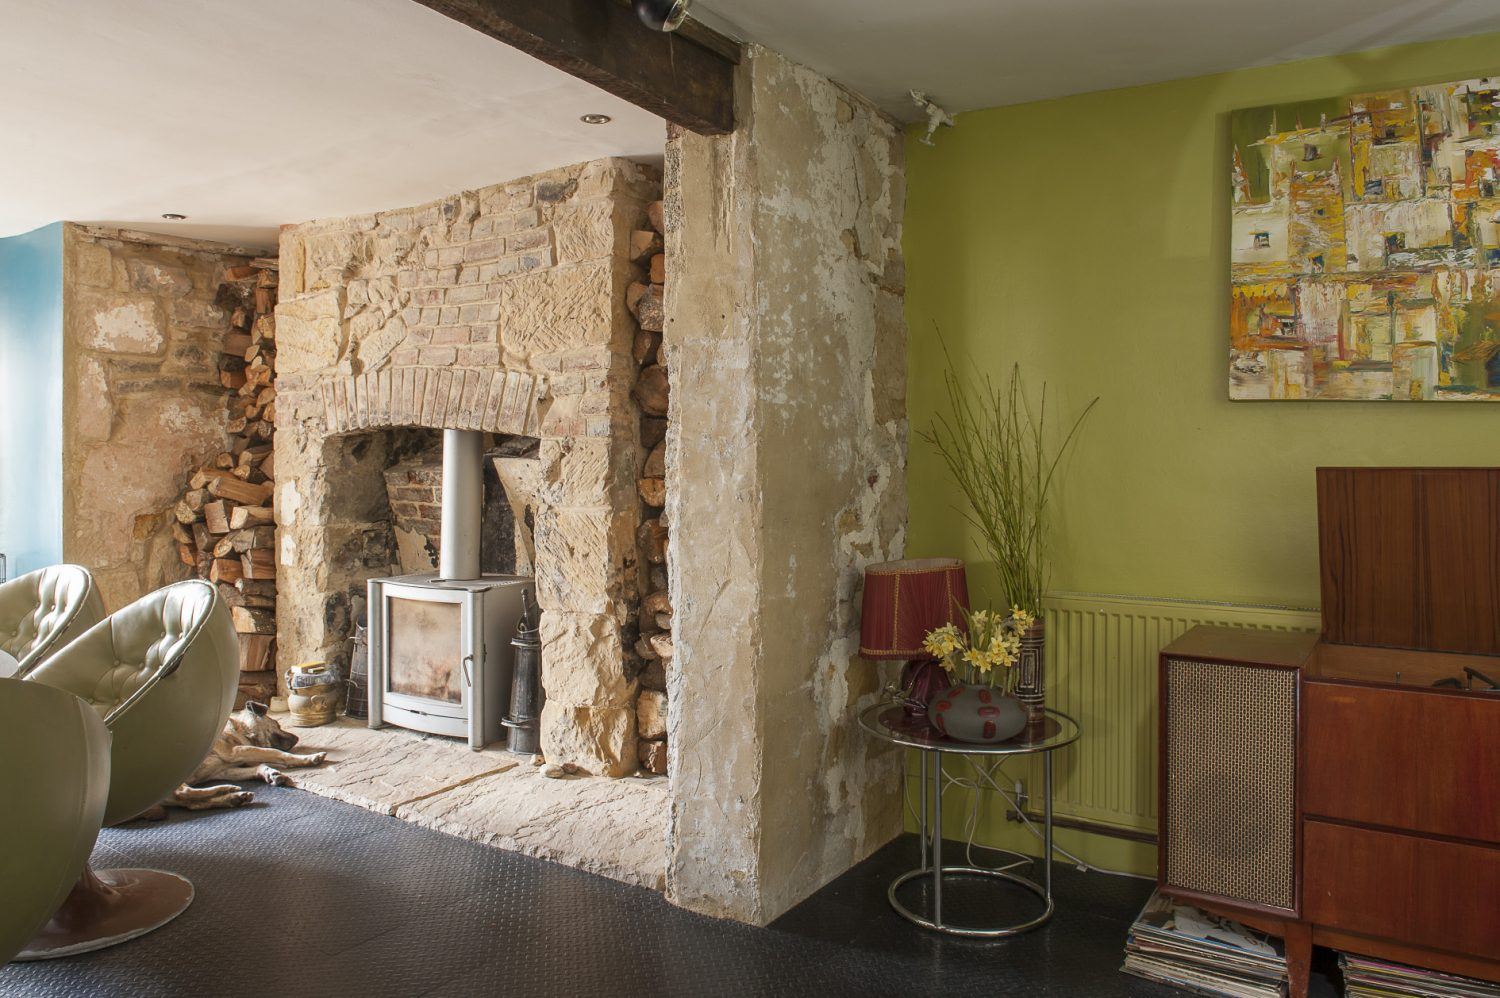 The exposed sandstone fireplace